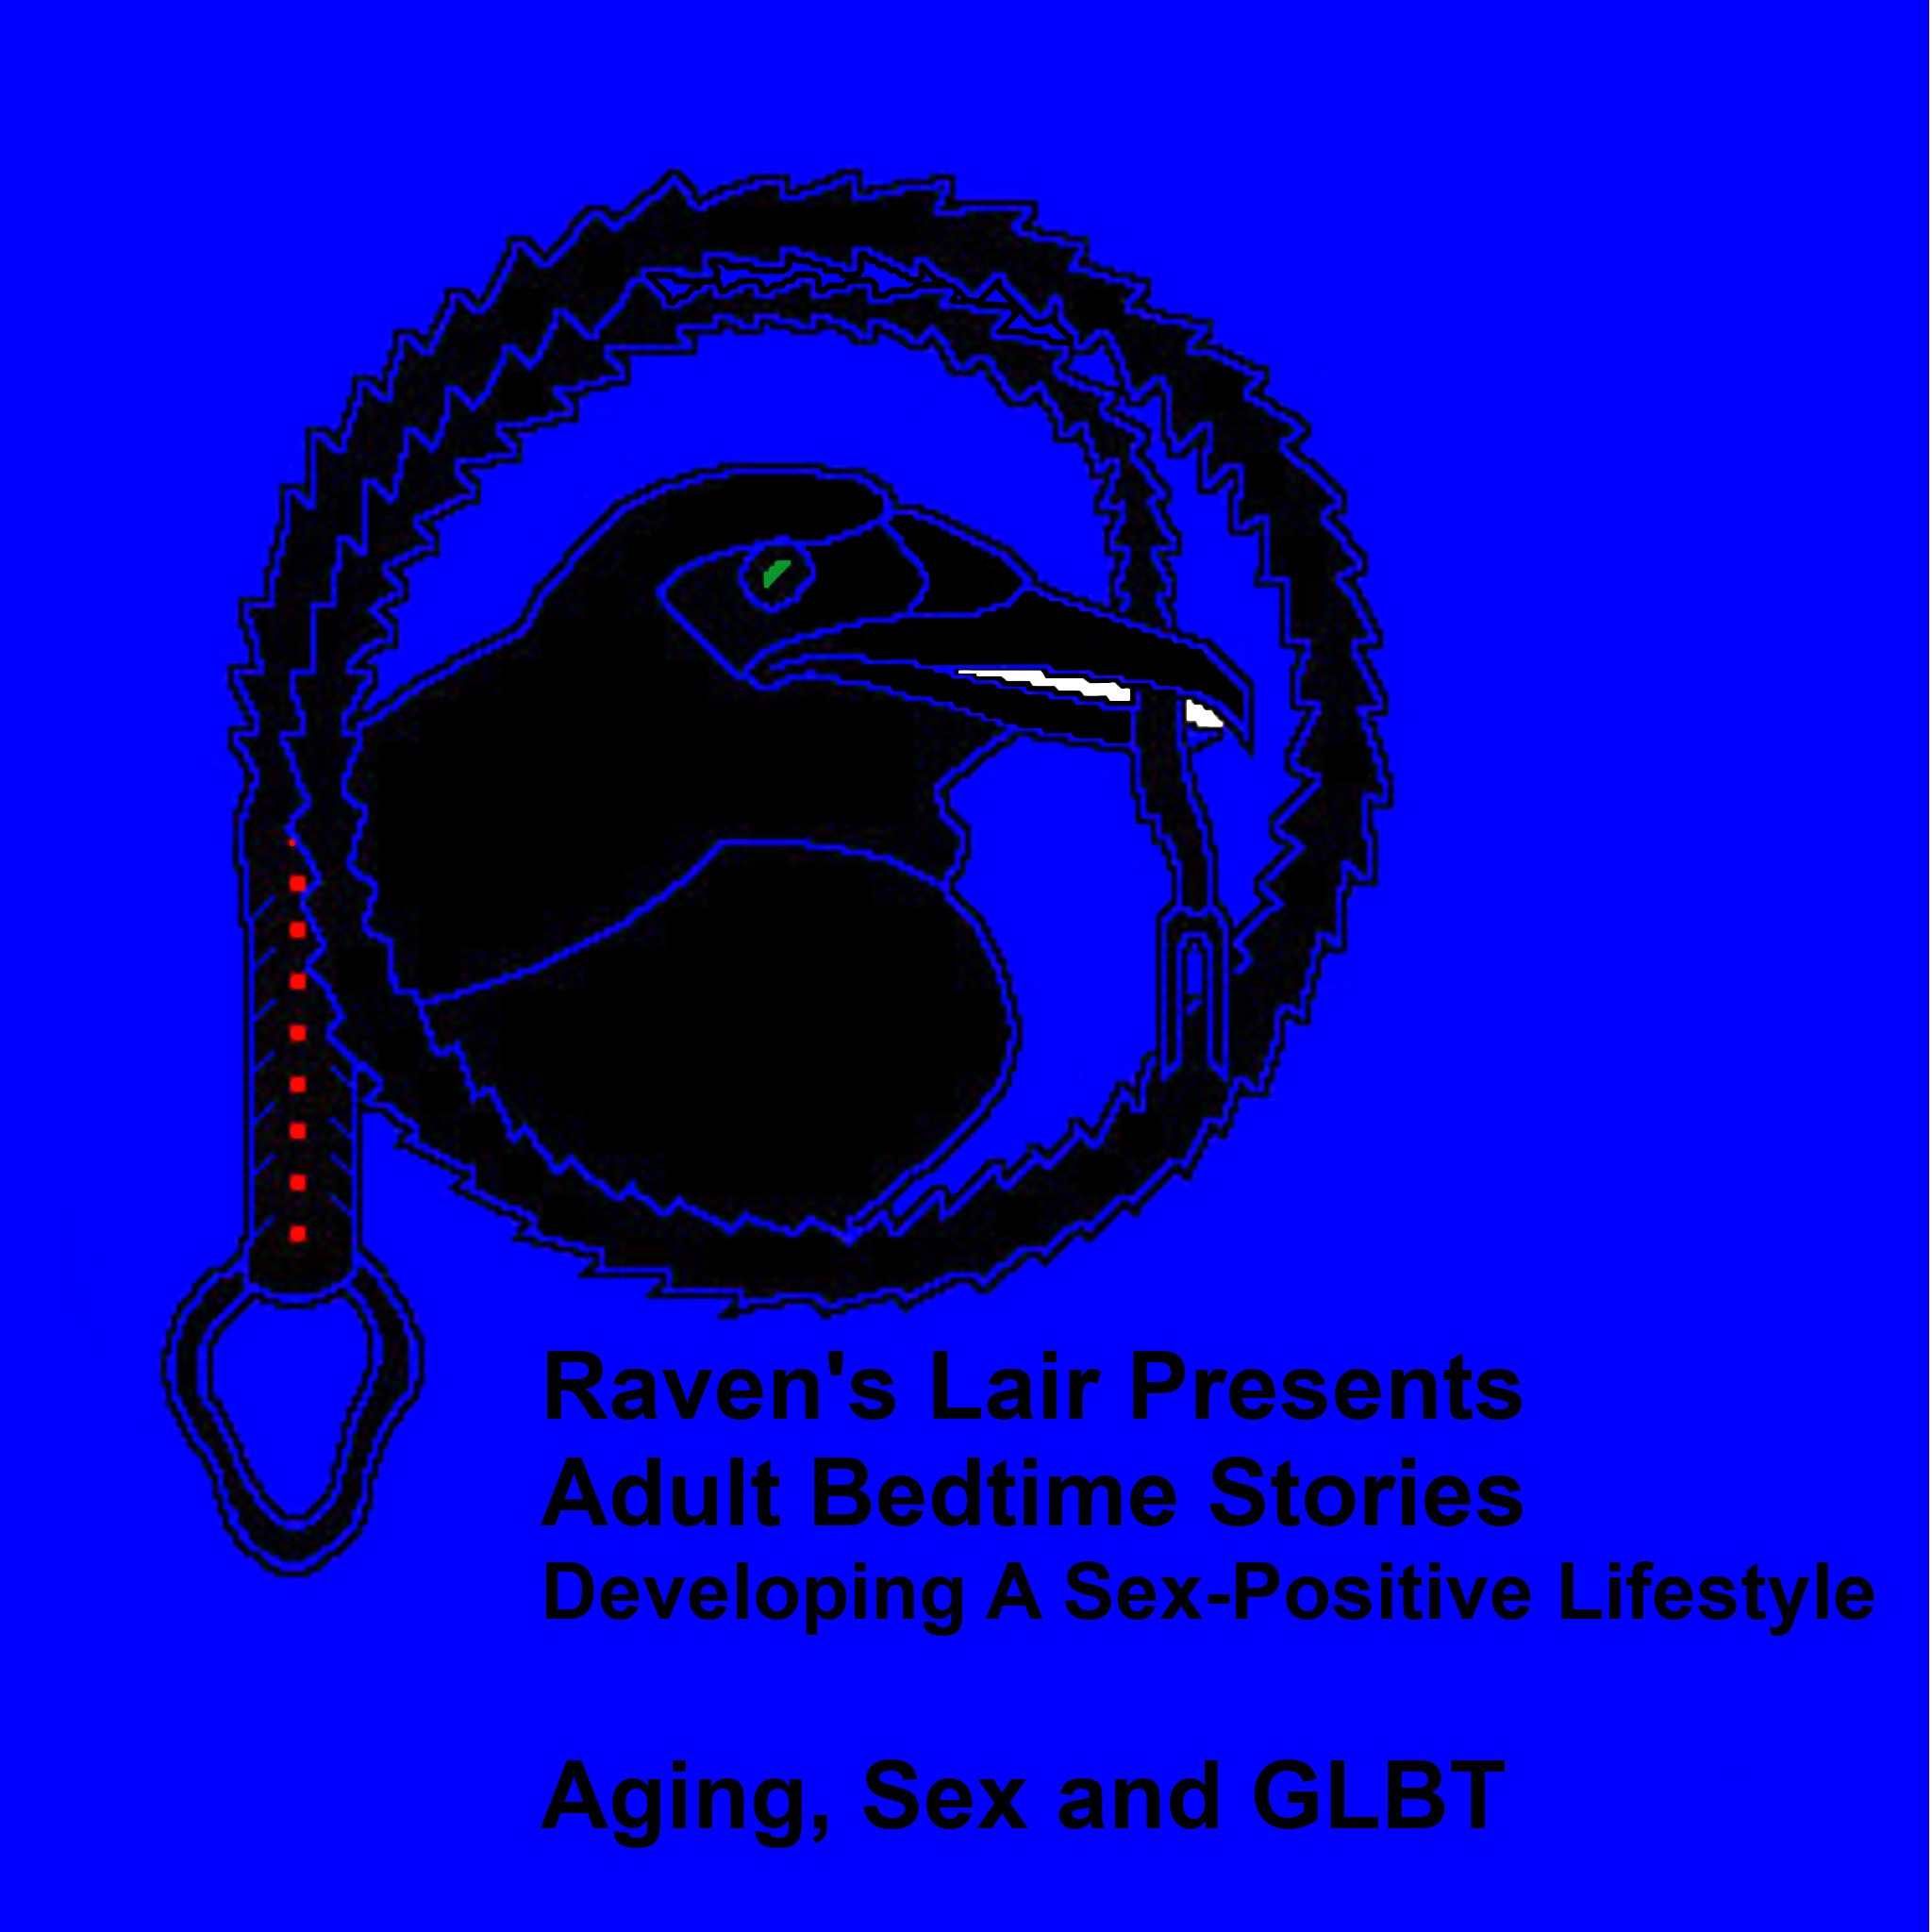 Aging, Sex, and GLBT Community